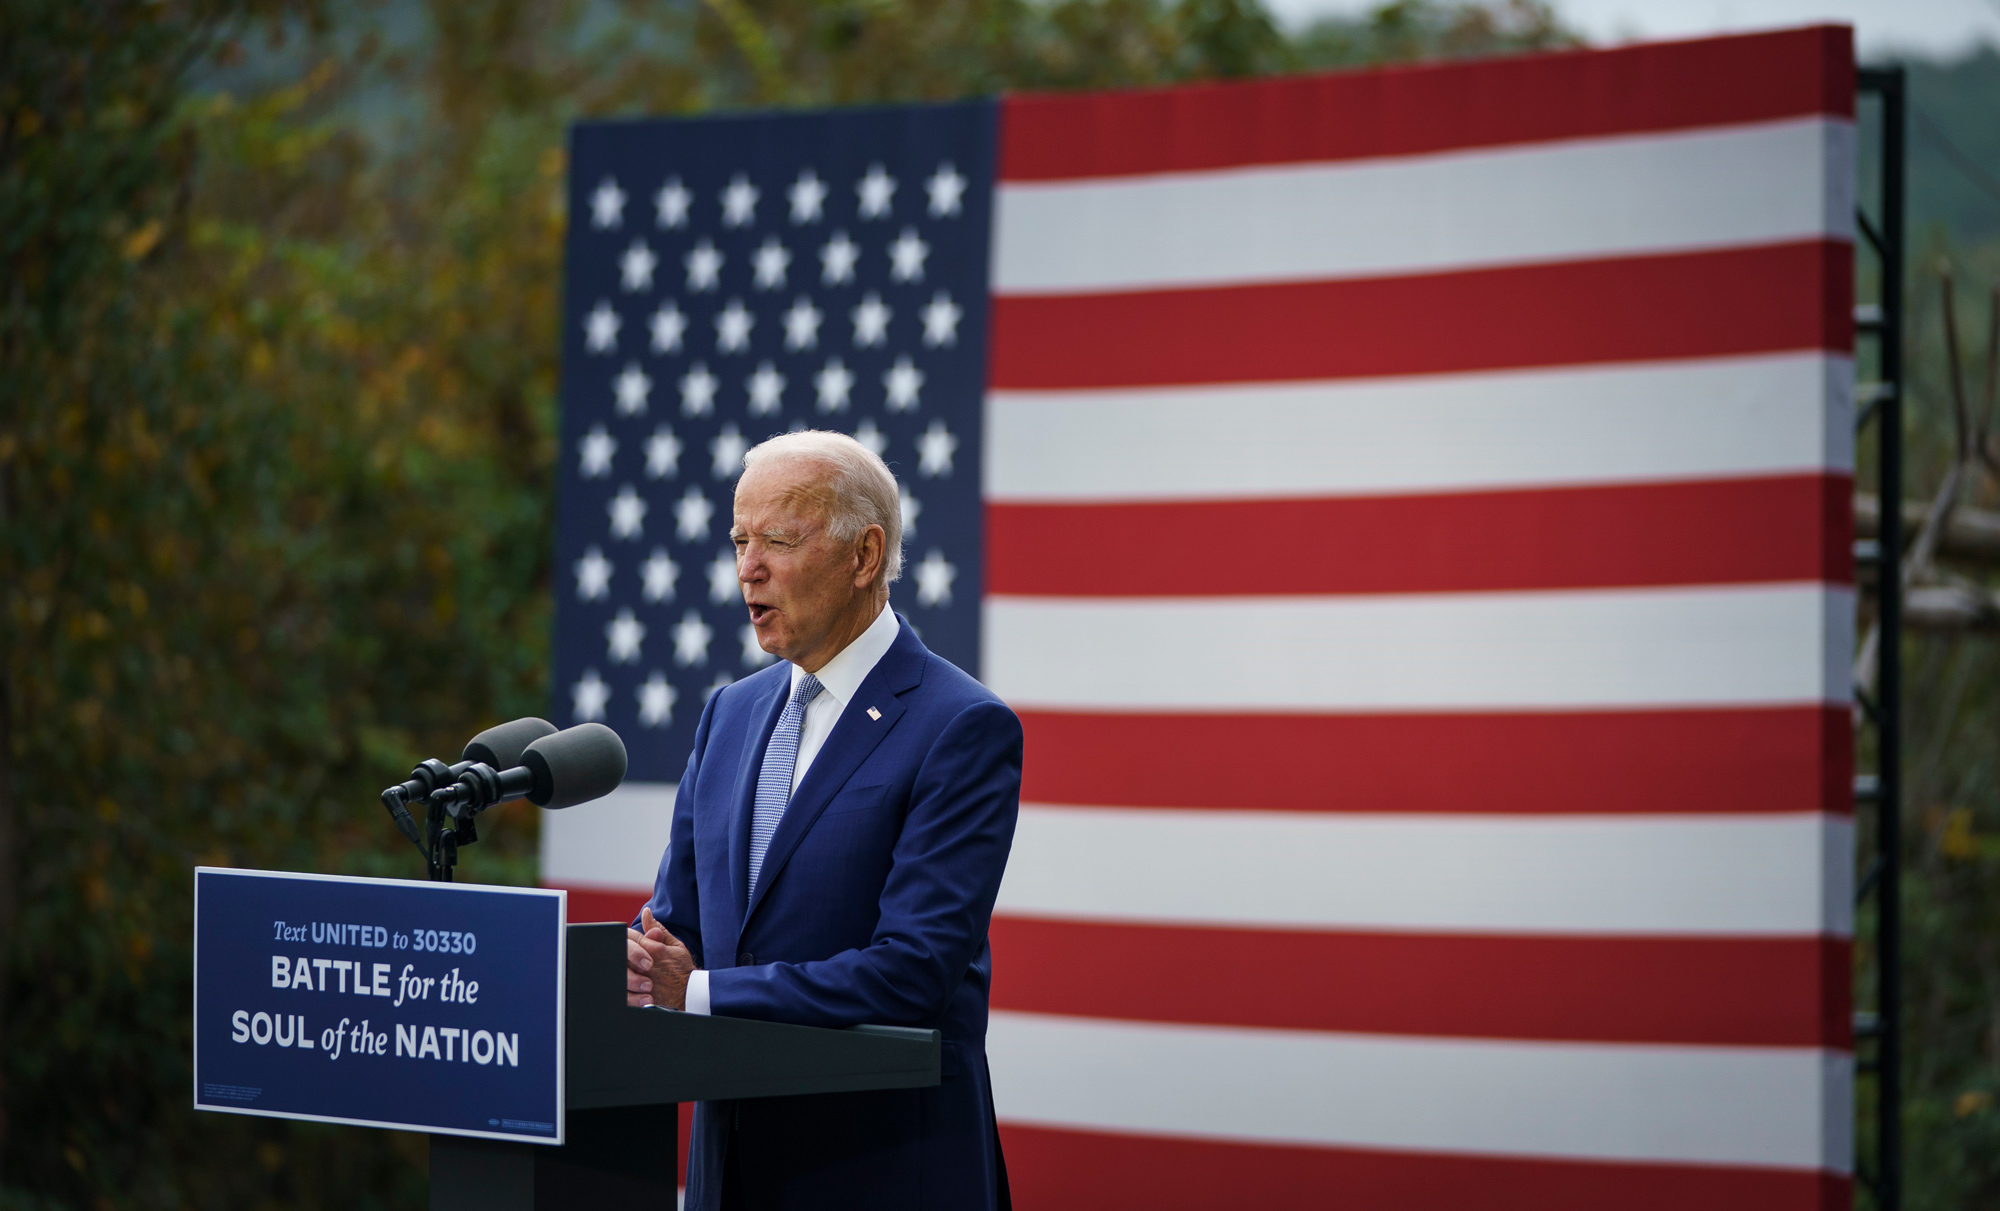 Democratic presidential nominee Joe Biden speaks during a campaign event at the Mountain Top Inn and Resort on October 27 in Warm Springs, Georgia.